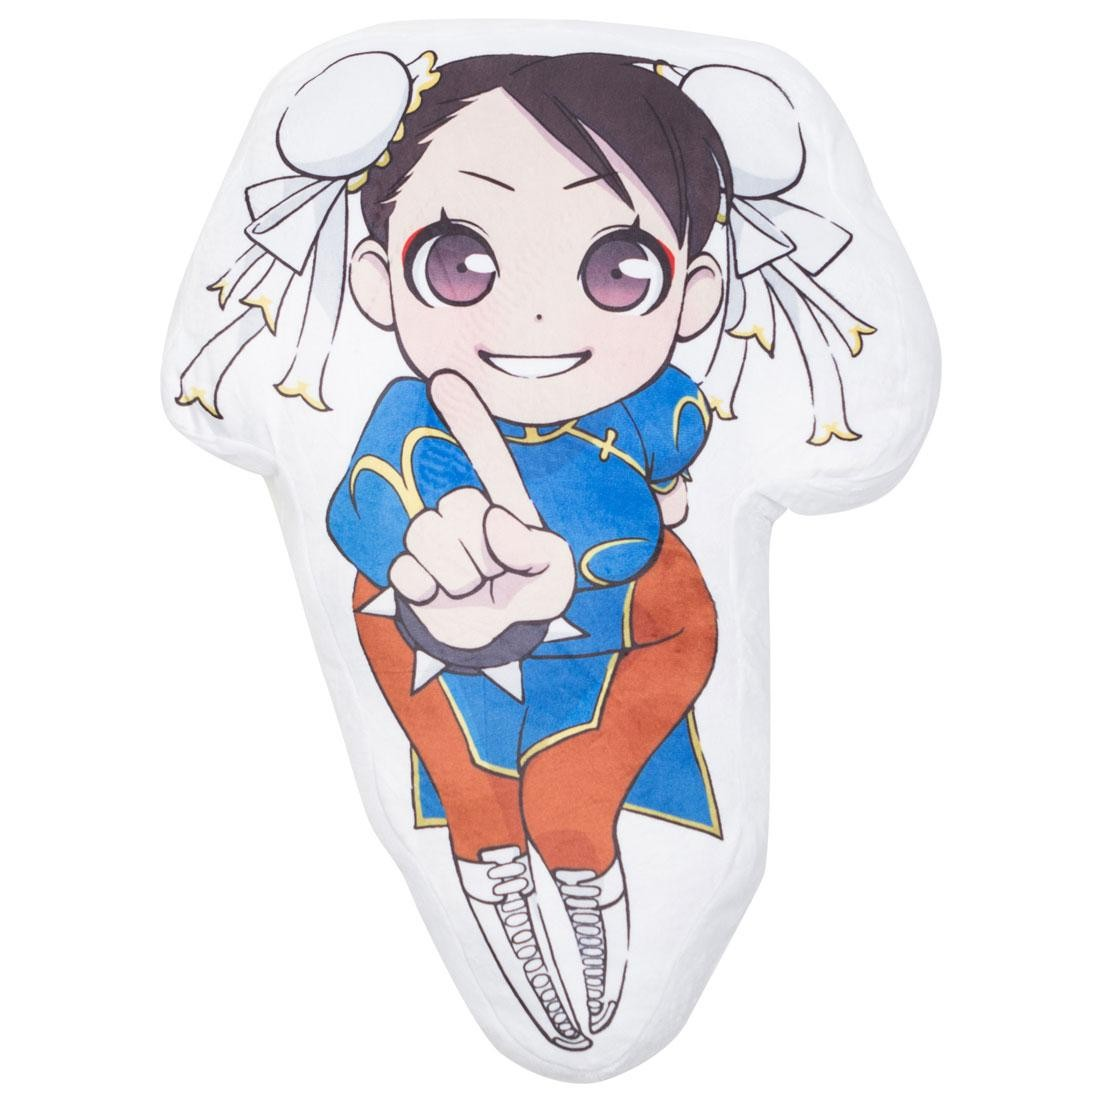 BAIT x Street Fighter Chun Li Pillow (blue)